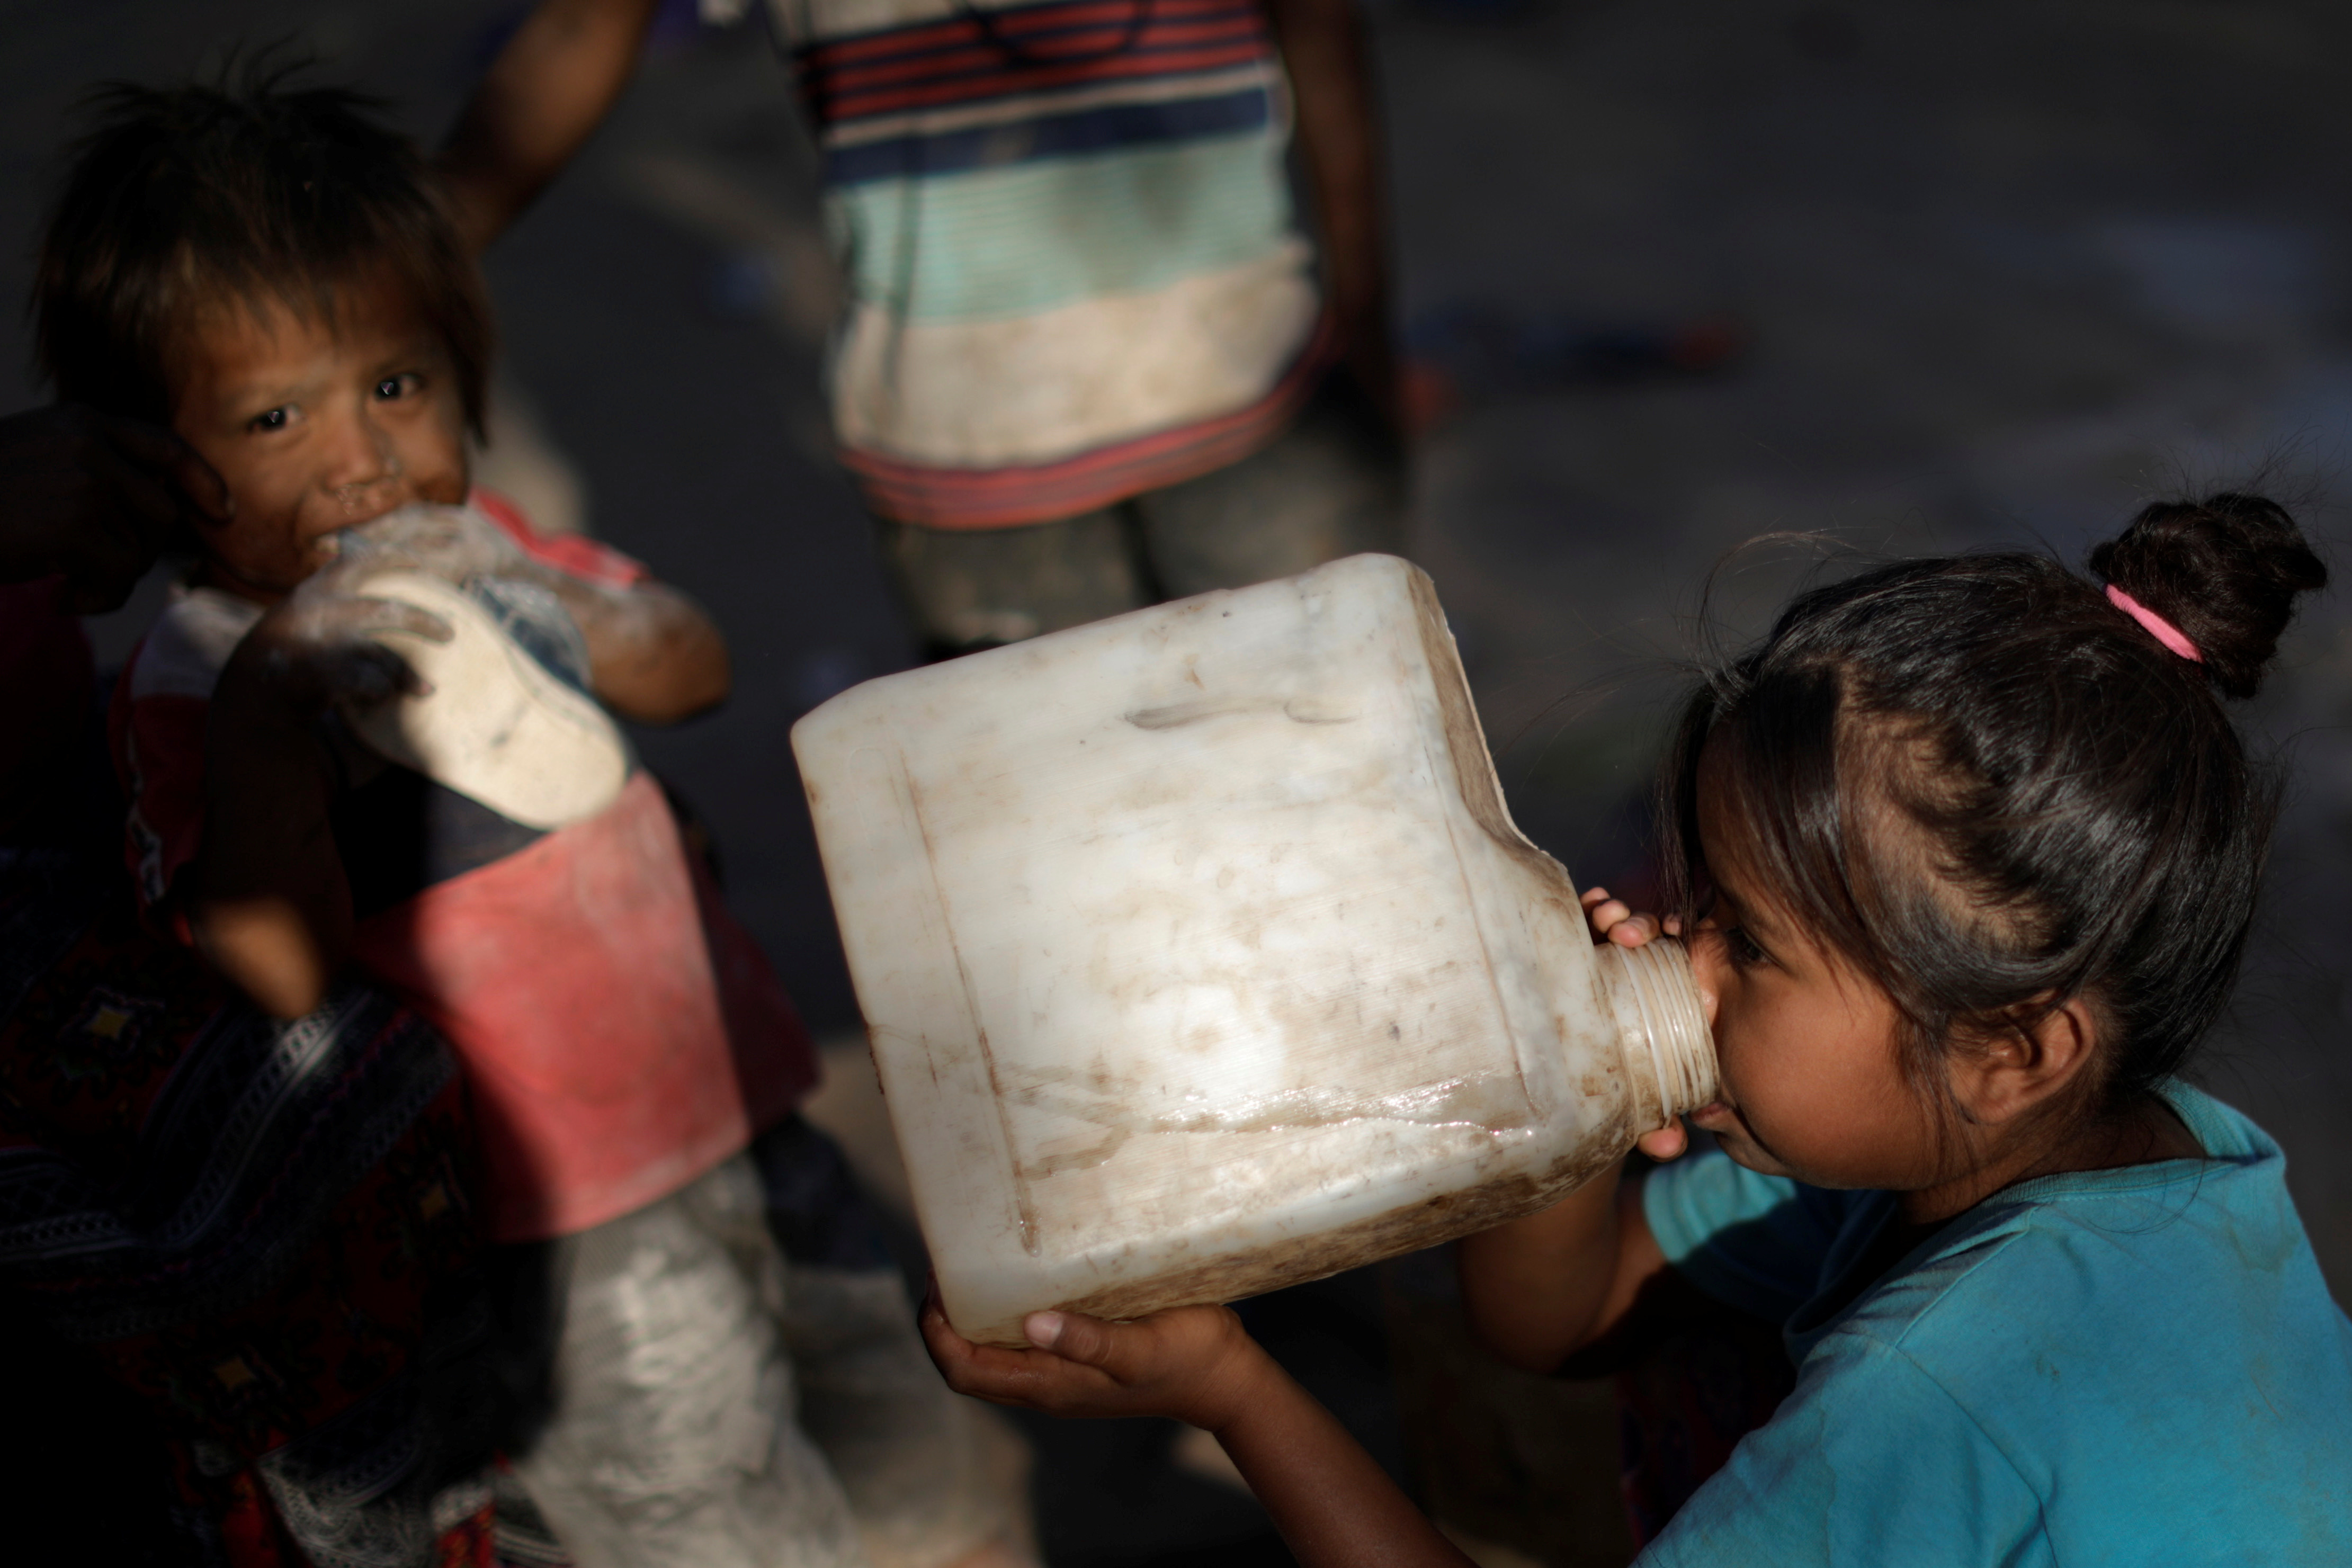 Children from the indigenous Wichi community drink water from plastic gallons, in the Salta province, Argentina, February 28, 2020. Picture taken February 28, 2020. REUTERS/Ueslei Marcelino - RC2ECF97W5DQ